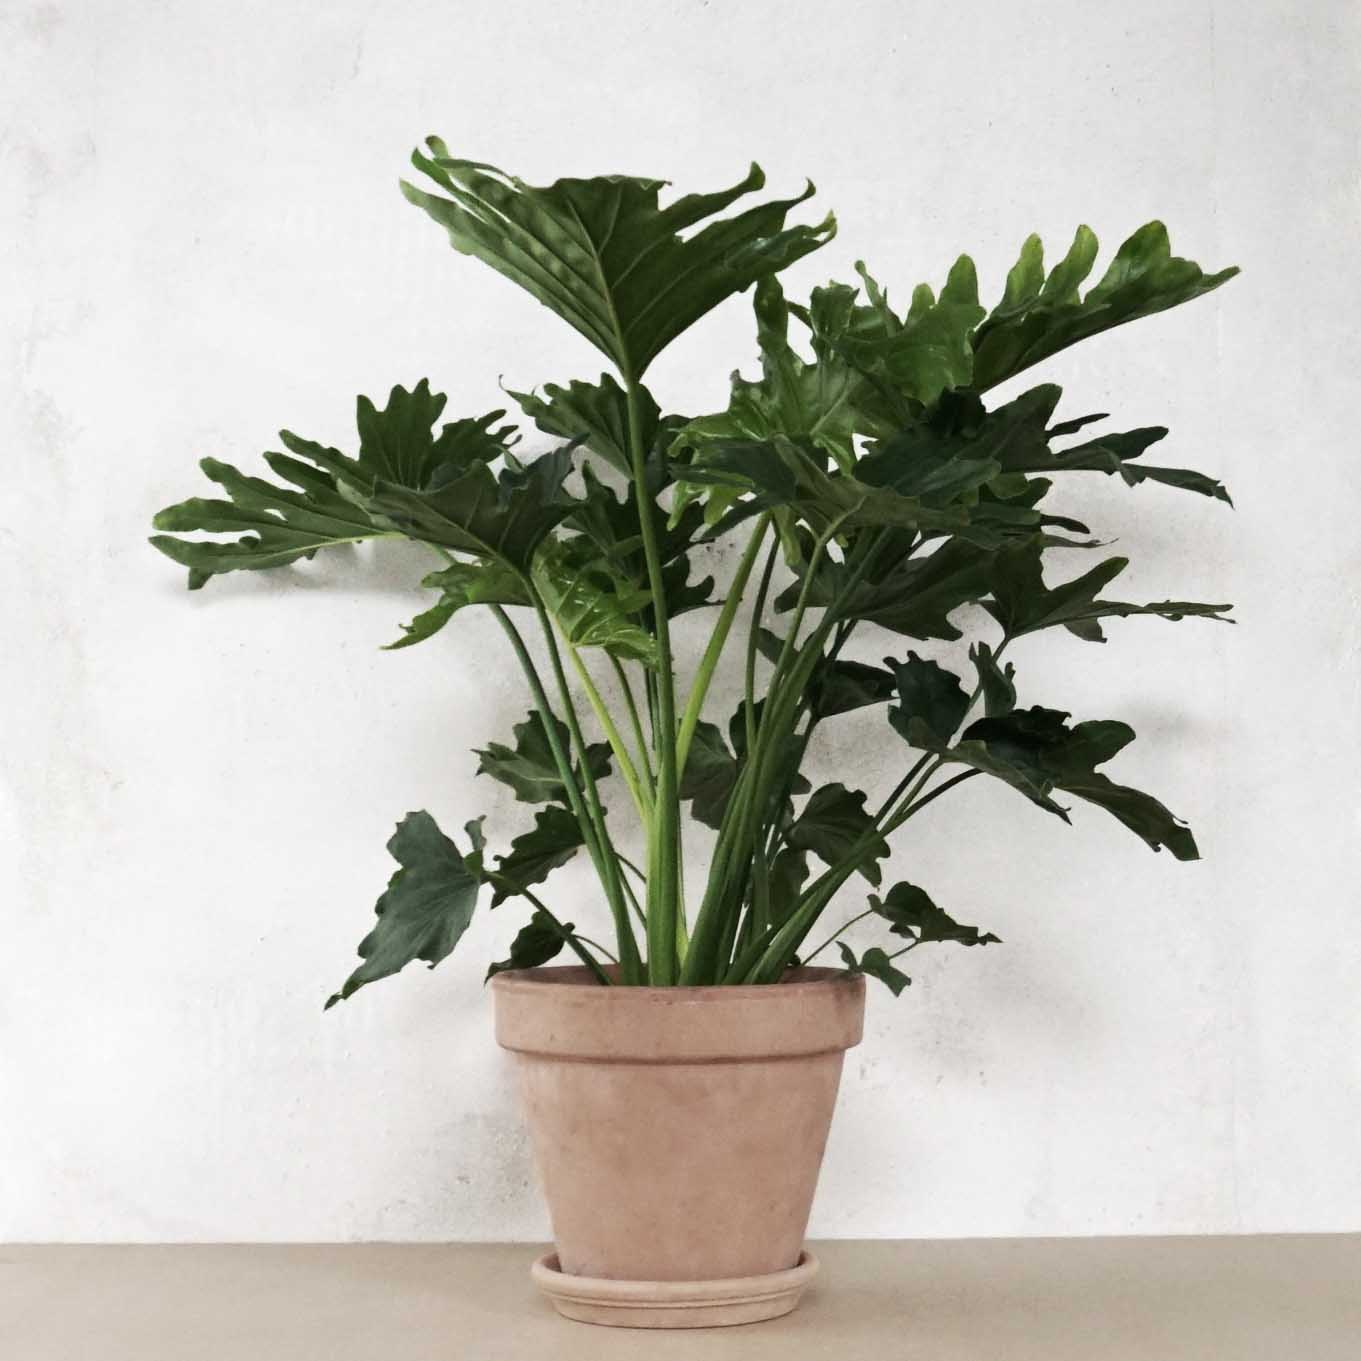 Philodendron selloum 'Hope' fra Greenify